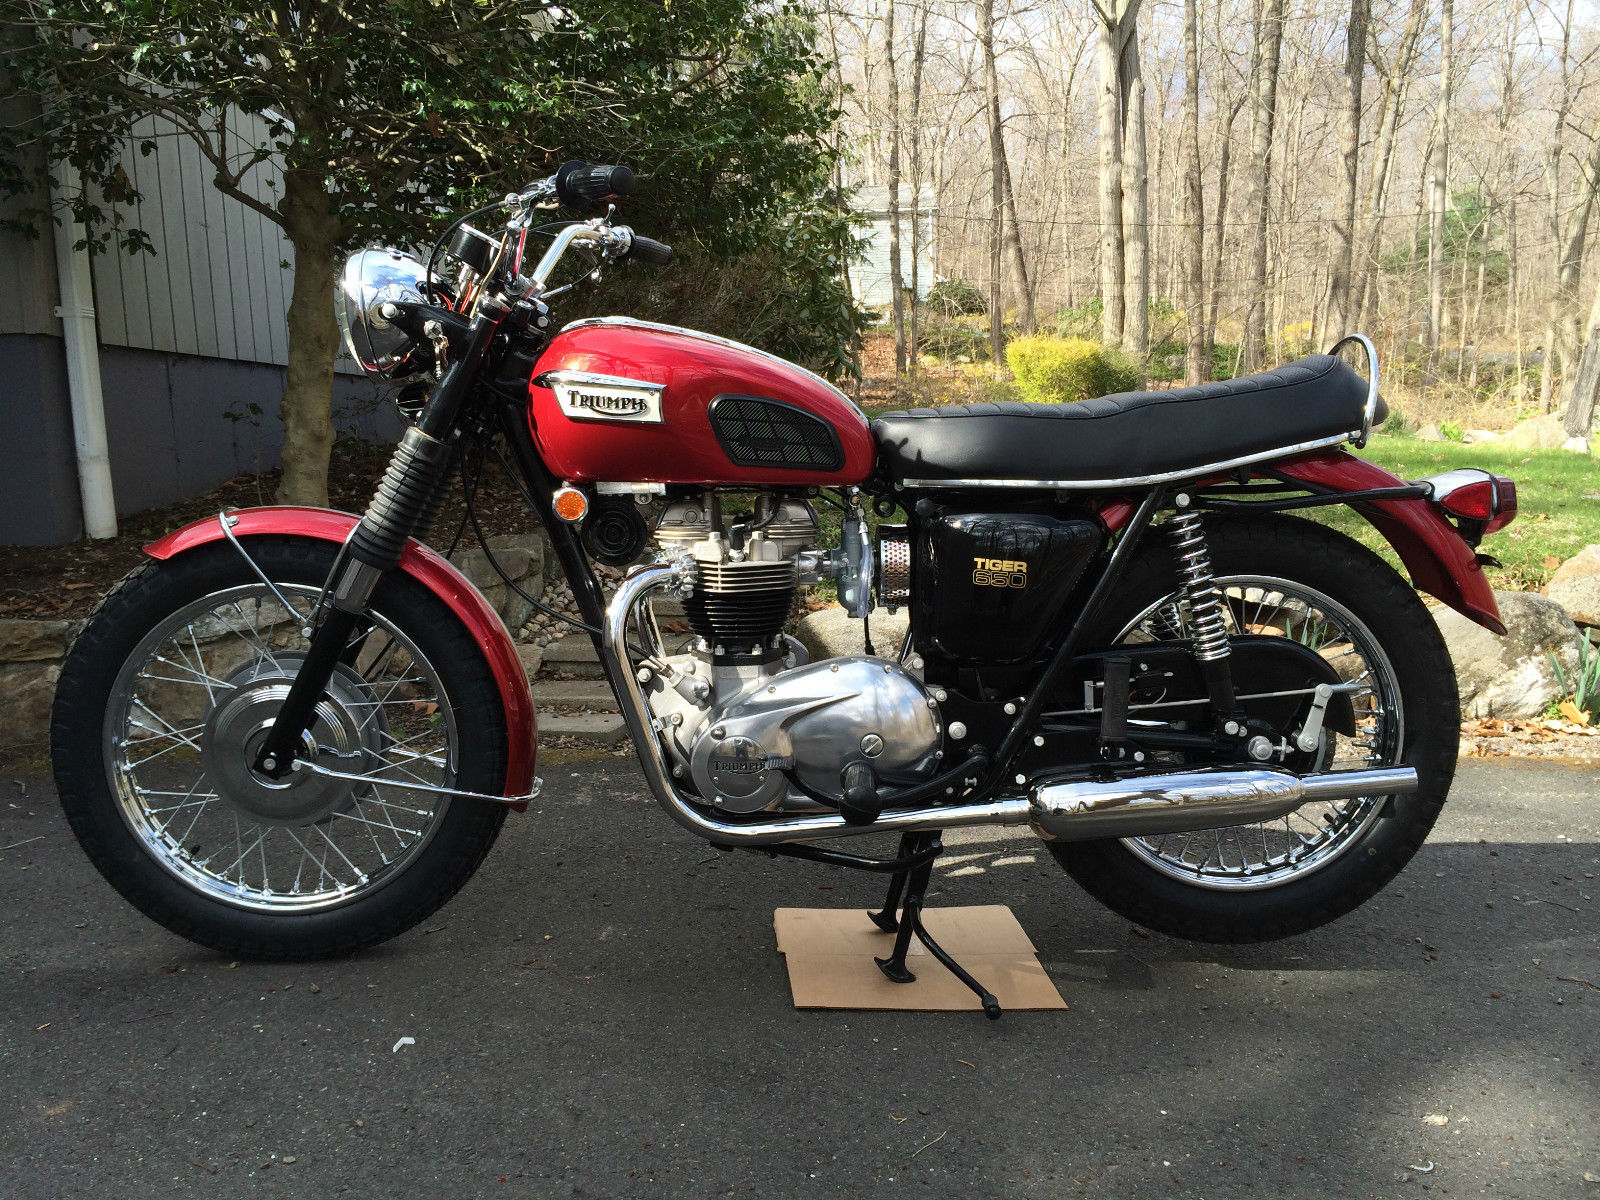 1969 Triumph Tr6r Tiger 650 Trophy Winning Restoration